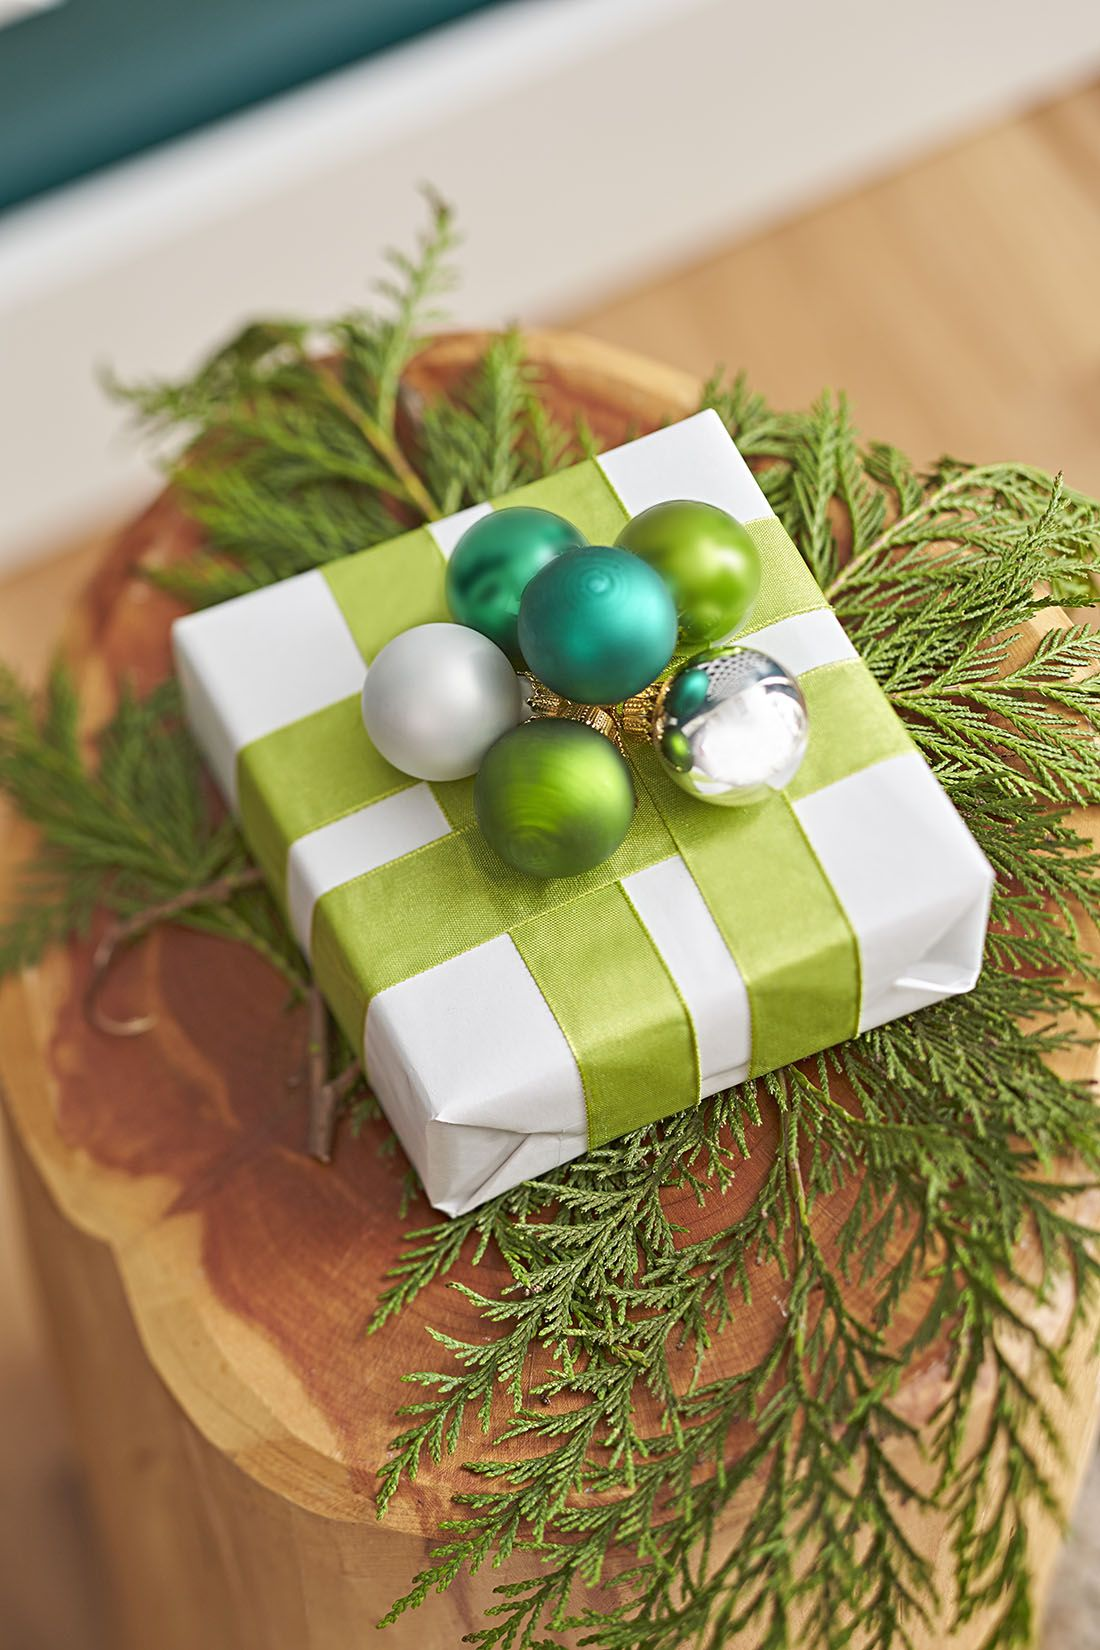 Decorate Gifts With Ribbon Tied In A Window Pane Pattern And Topped With A Cluster Of Multi C Christmas Tree Decorations Big Christmas Tree Gold Christmas Tree